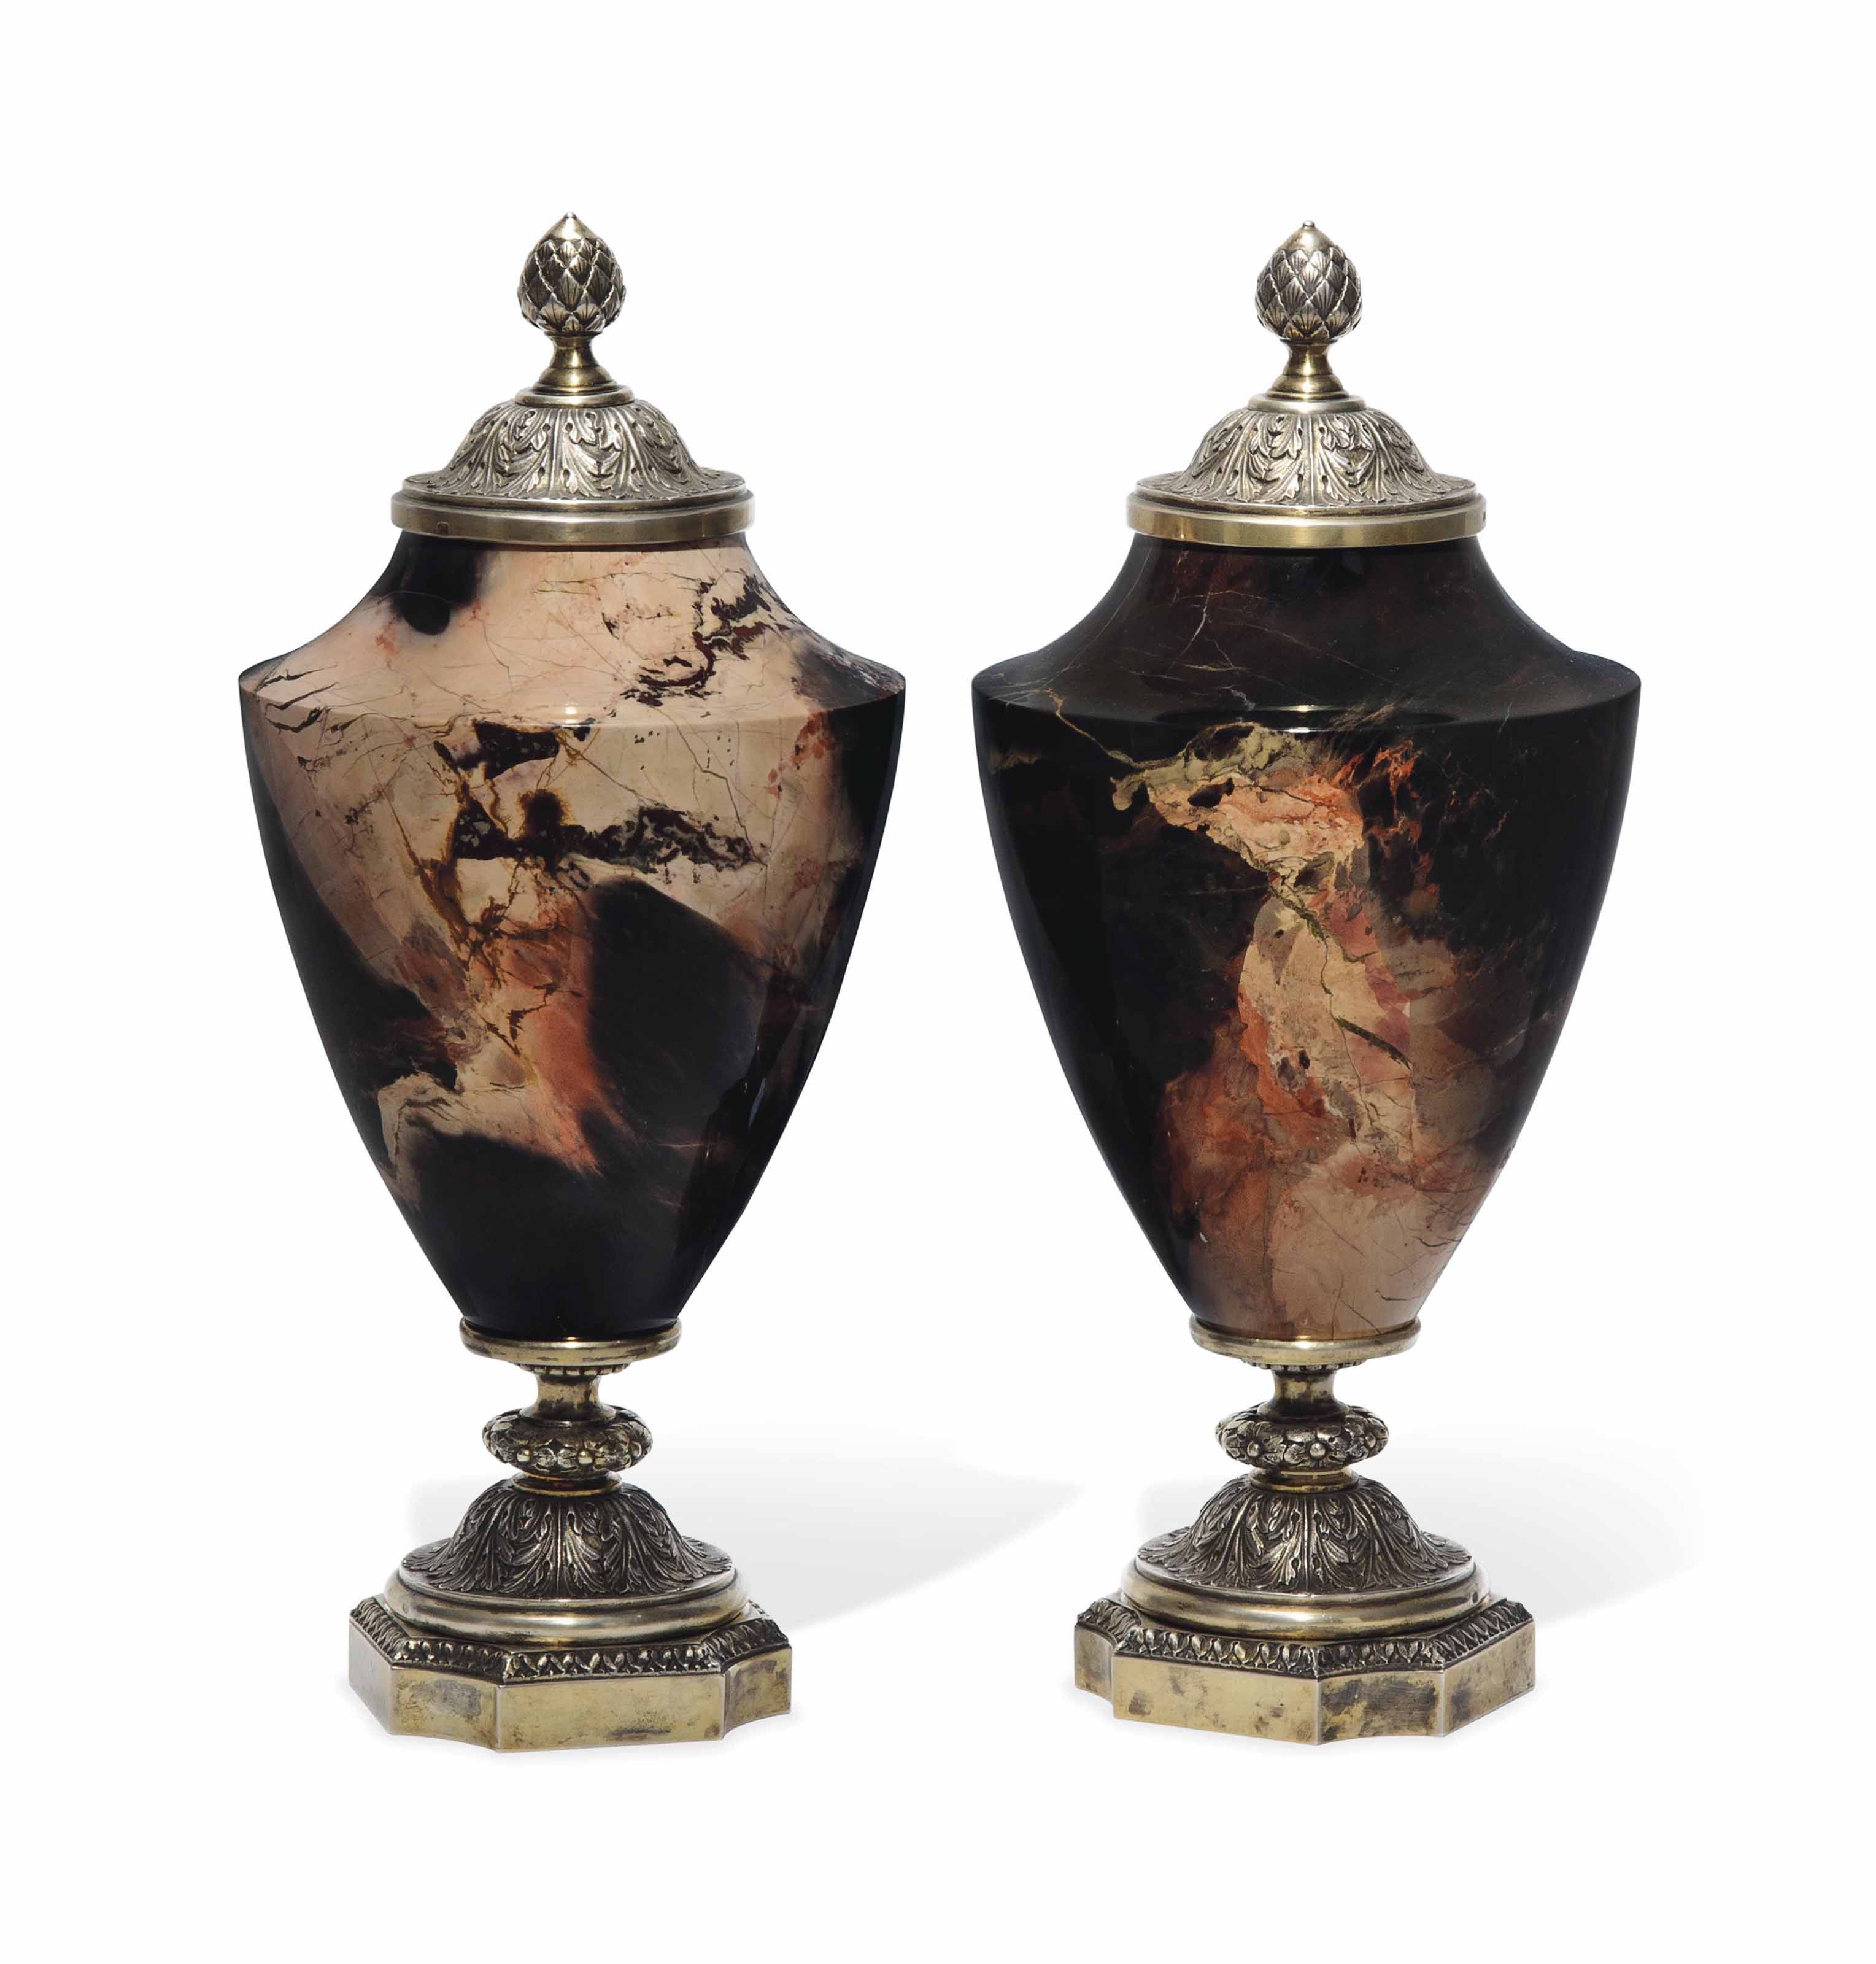 A PAIR OF RUSSIAN SILVER-MOUNTED RIBBON JASPER URNS